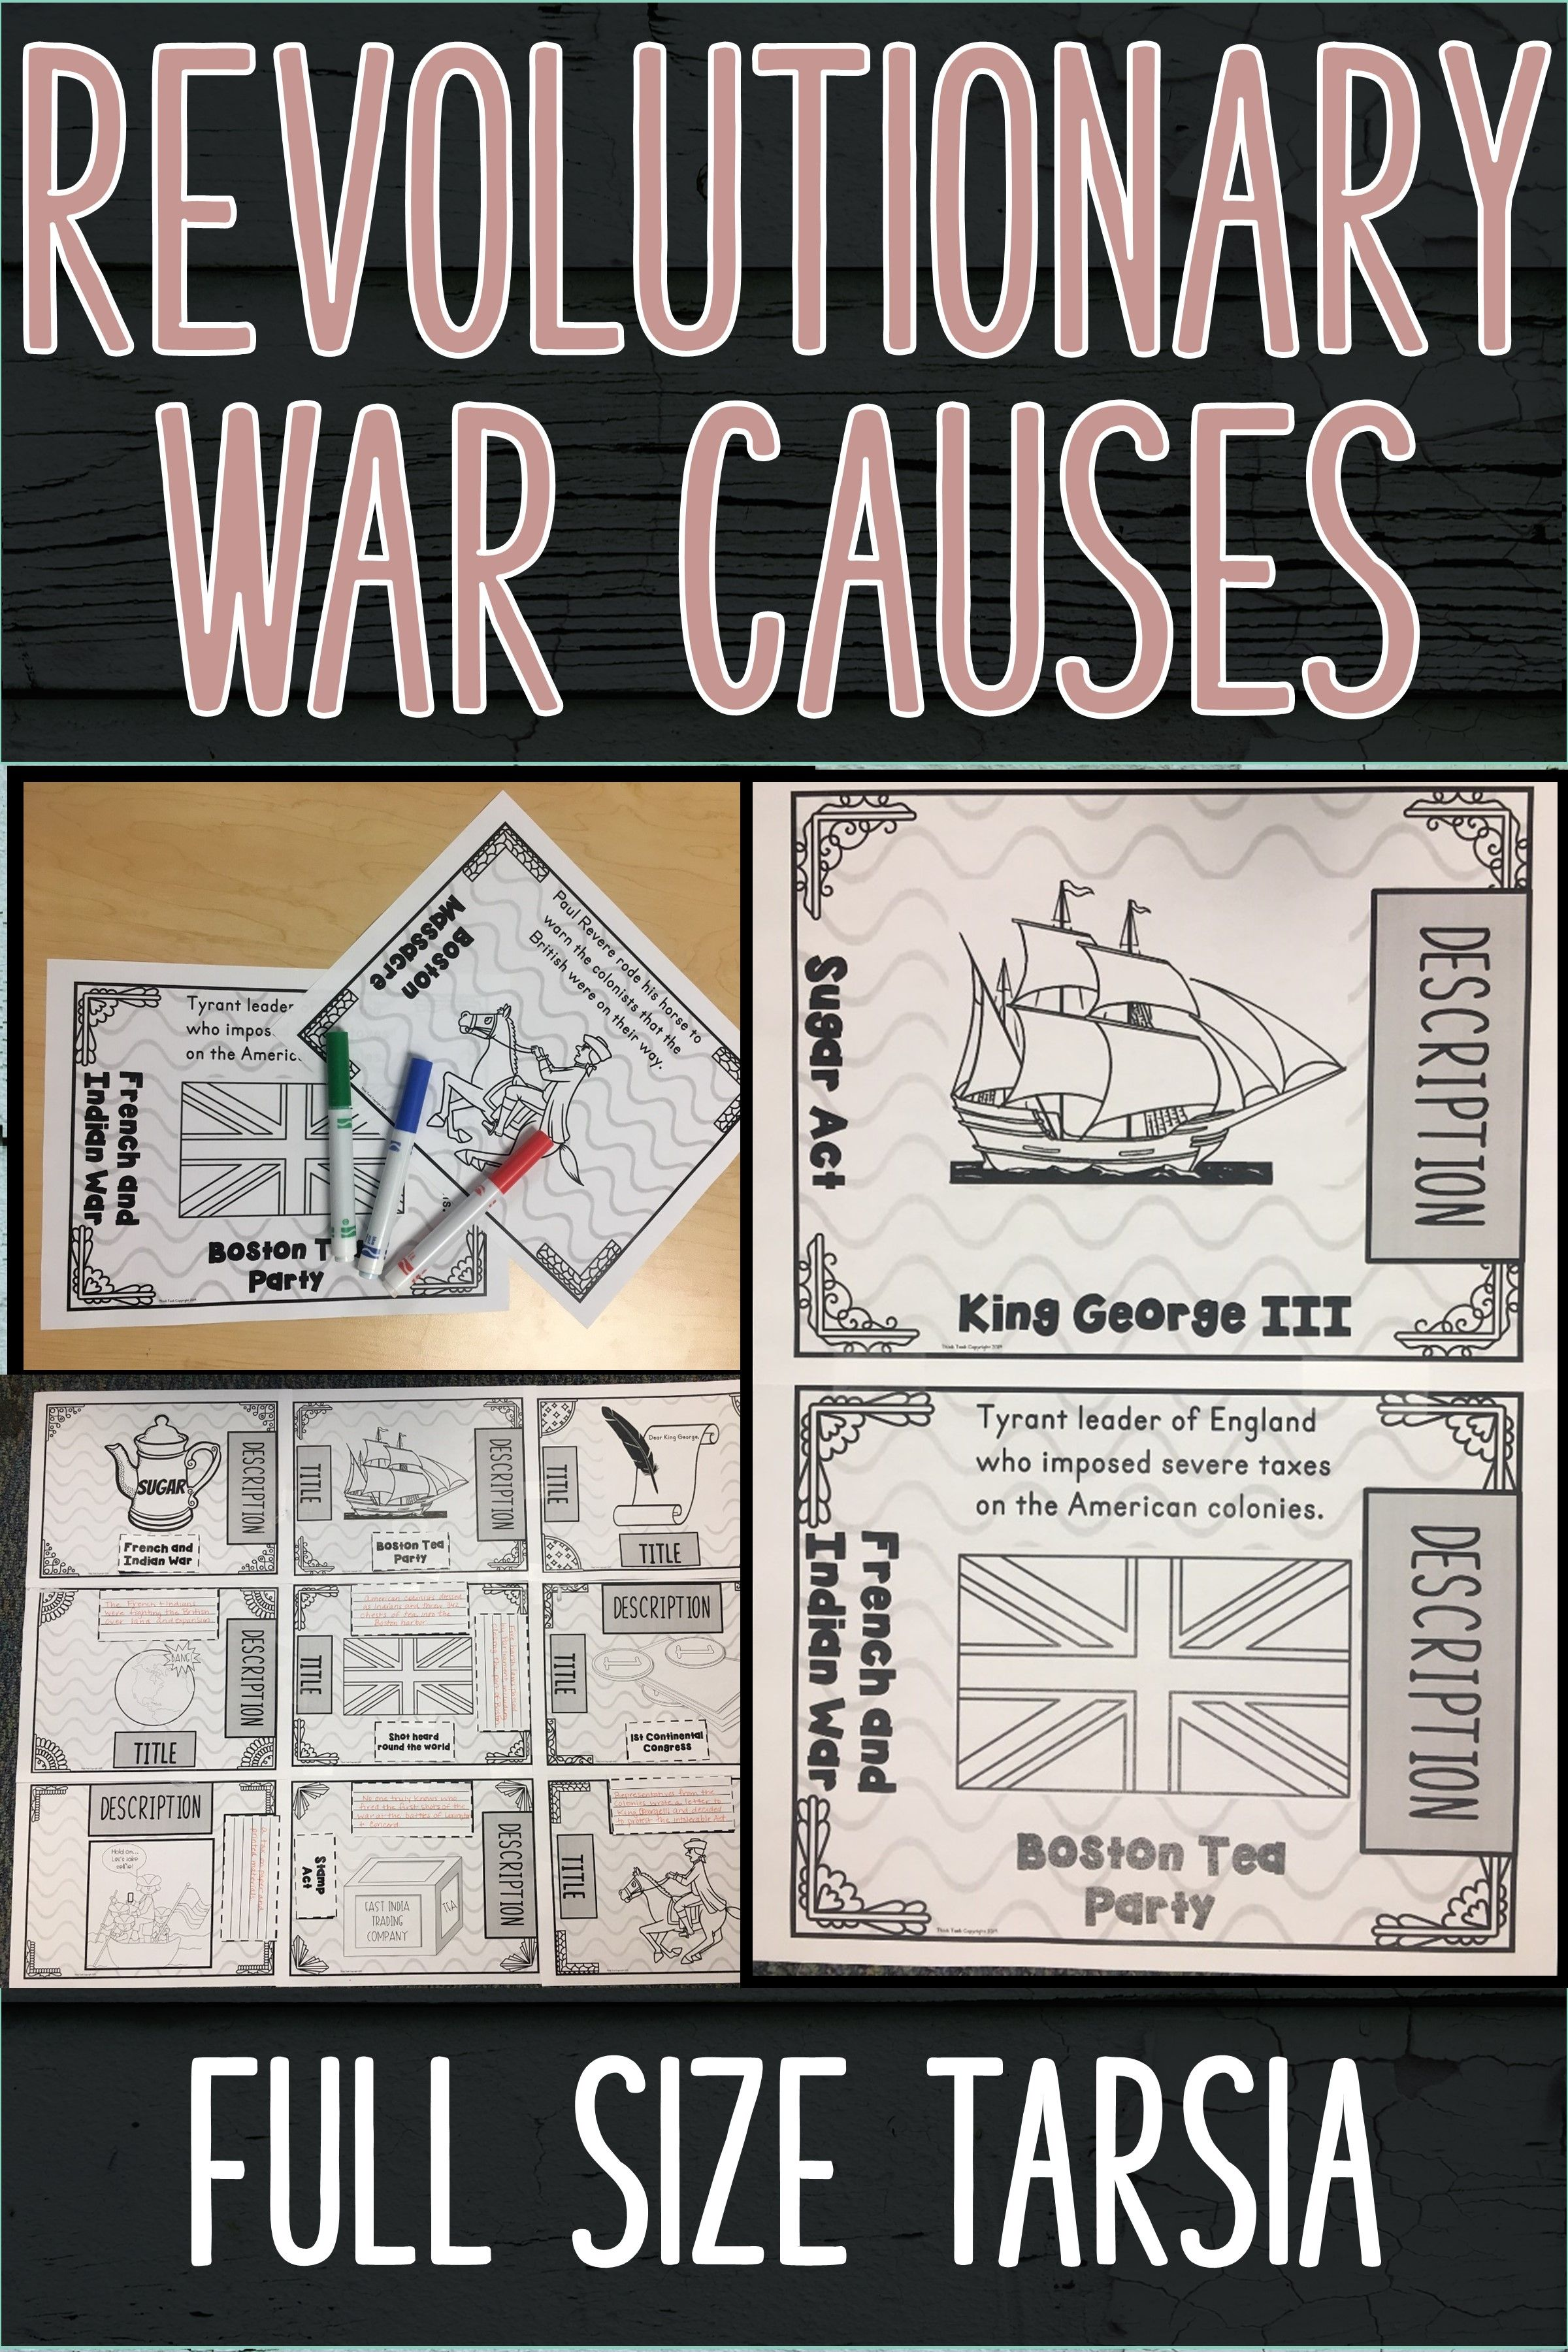 Revolutionary War Causes Full Size Group Tarsia Puzzle